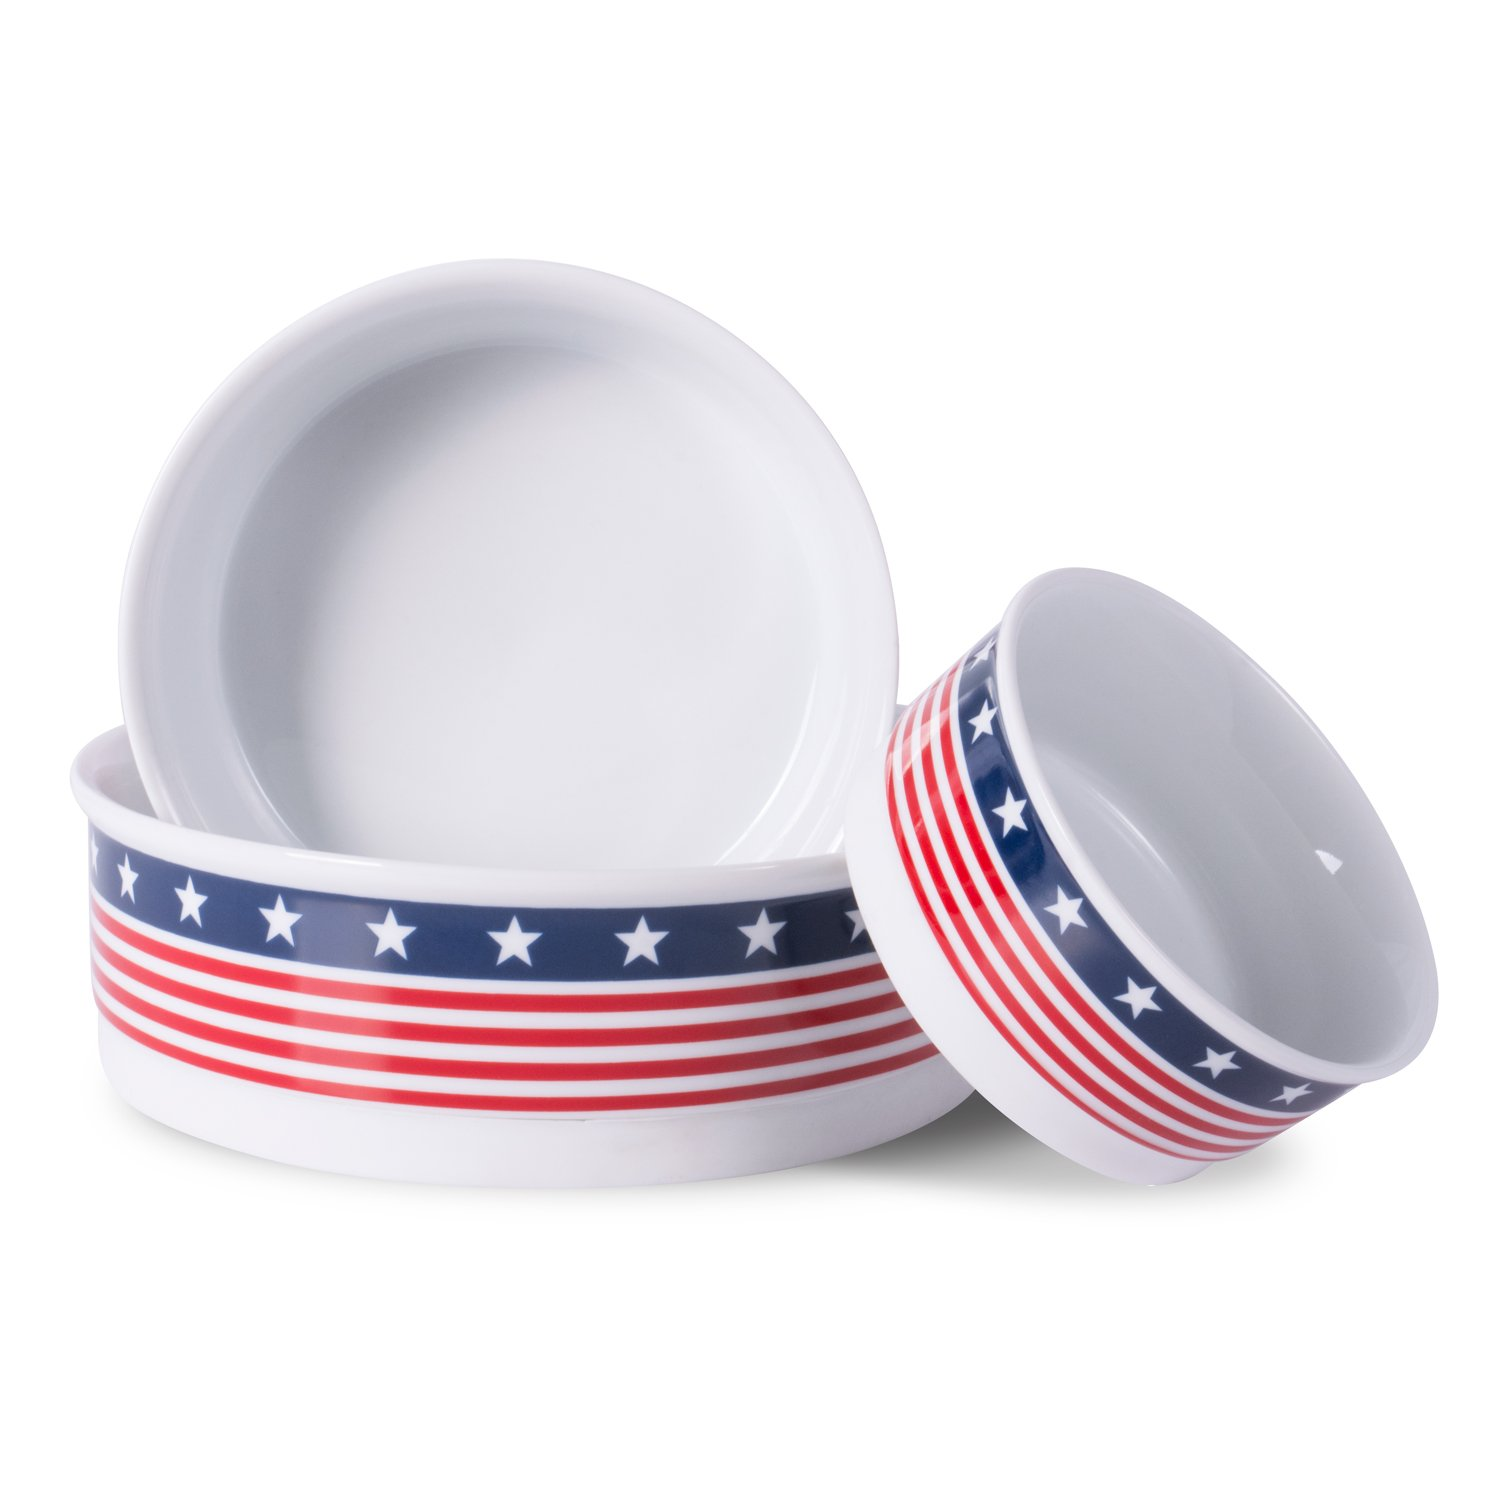 Bone Dry DII Patriotic Ceramic Pet Bowl for Food & Water with Non-Skid Silicone Rim for Dogs and Cats (Large - 7.5'' Dia x 4'' H) Stars and Stripes by Bone Dry (Image #6)